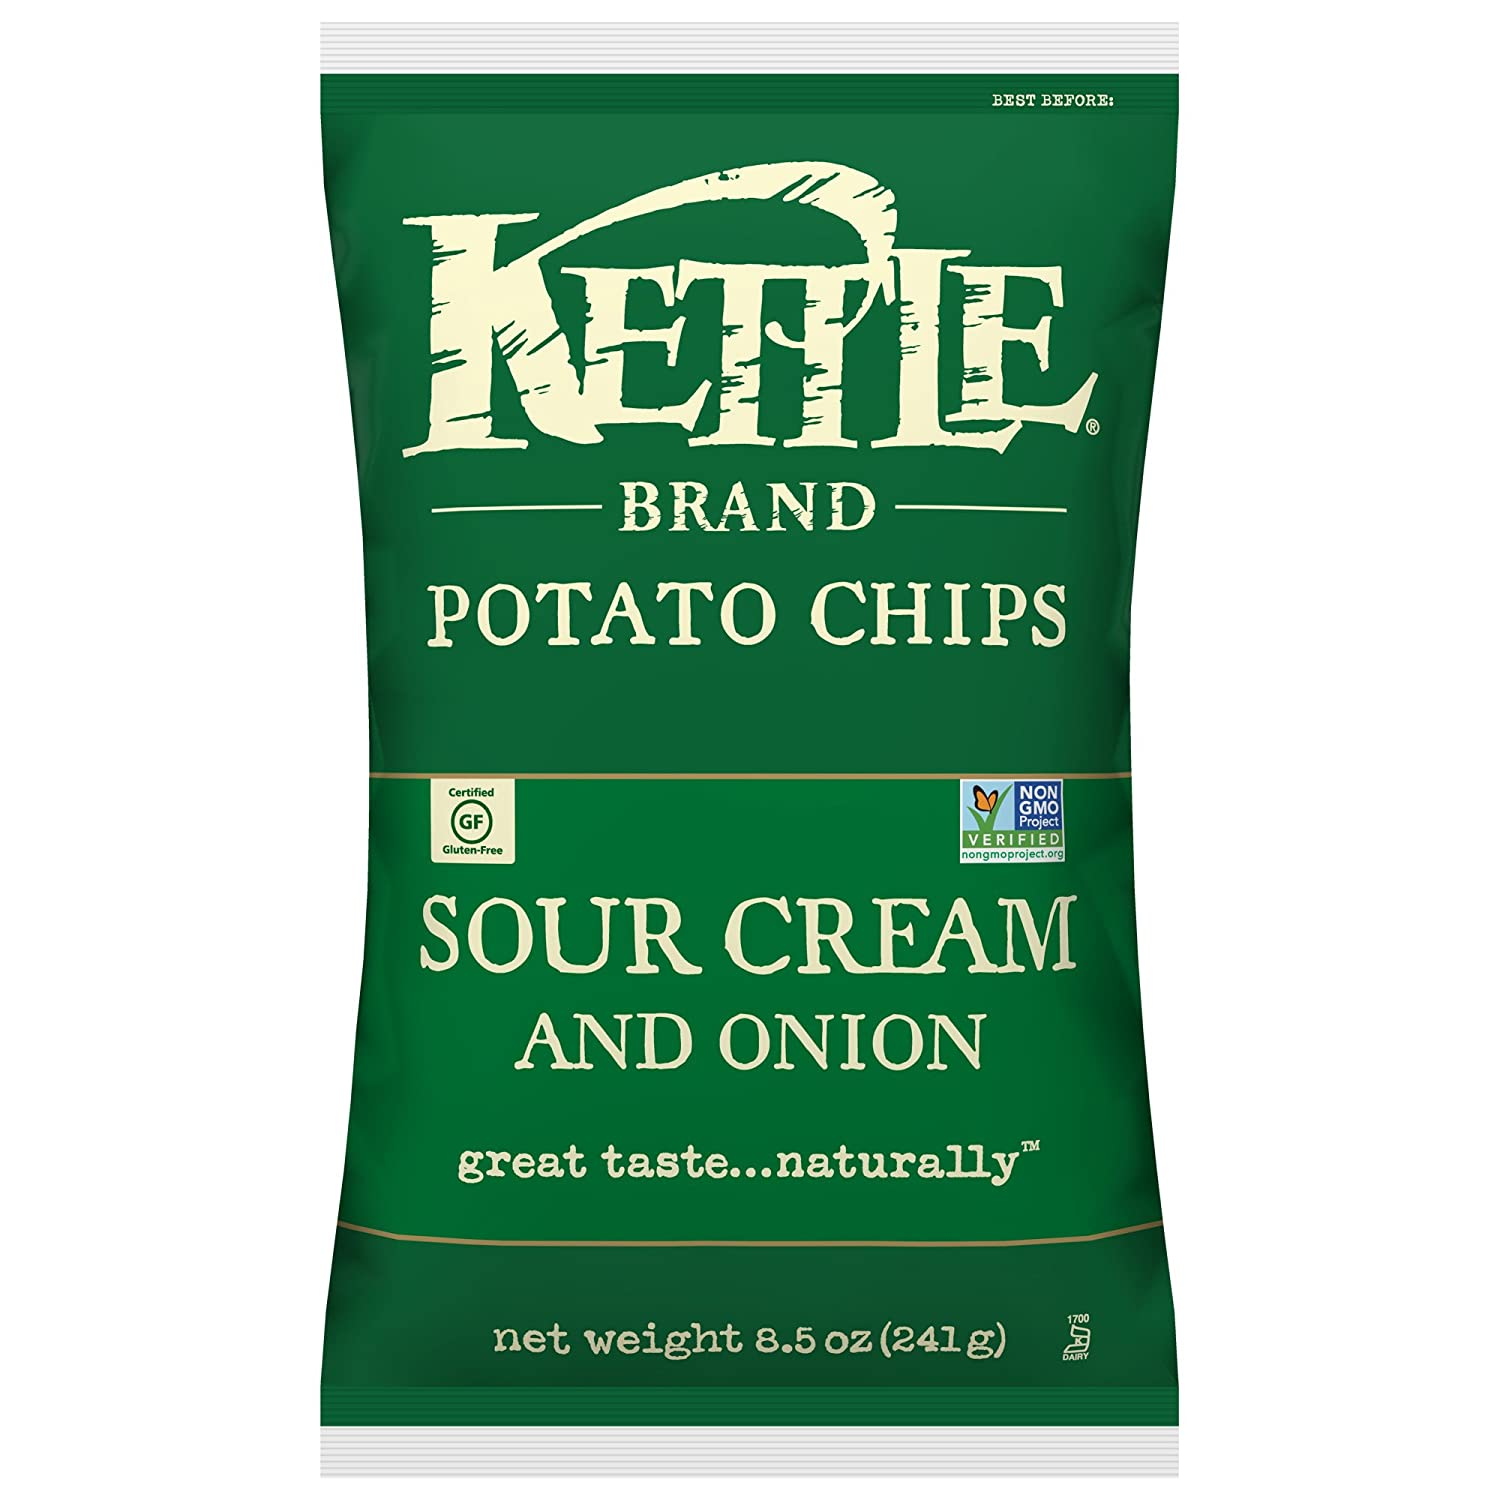 Kettle Brand Potato Chips, Sour Cream and Onion, 8.5 Ounce Bags (Pack of 12)